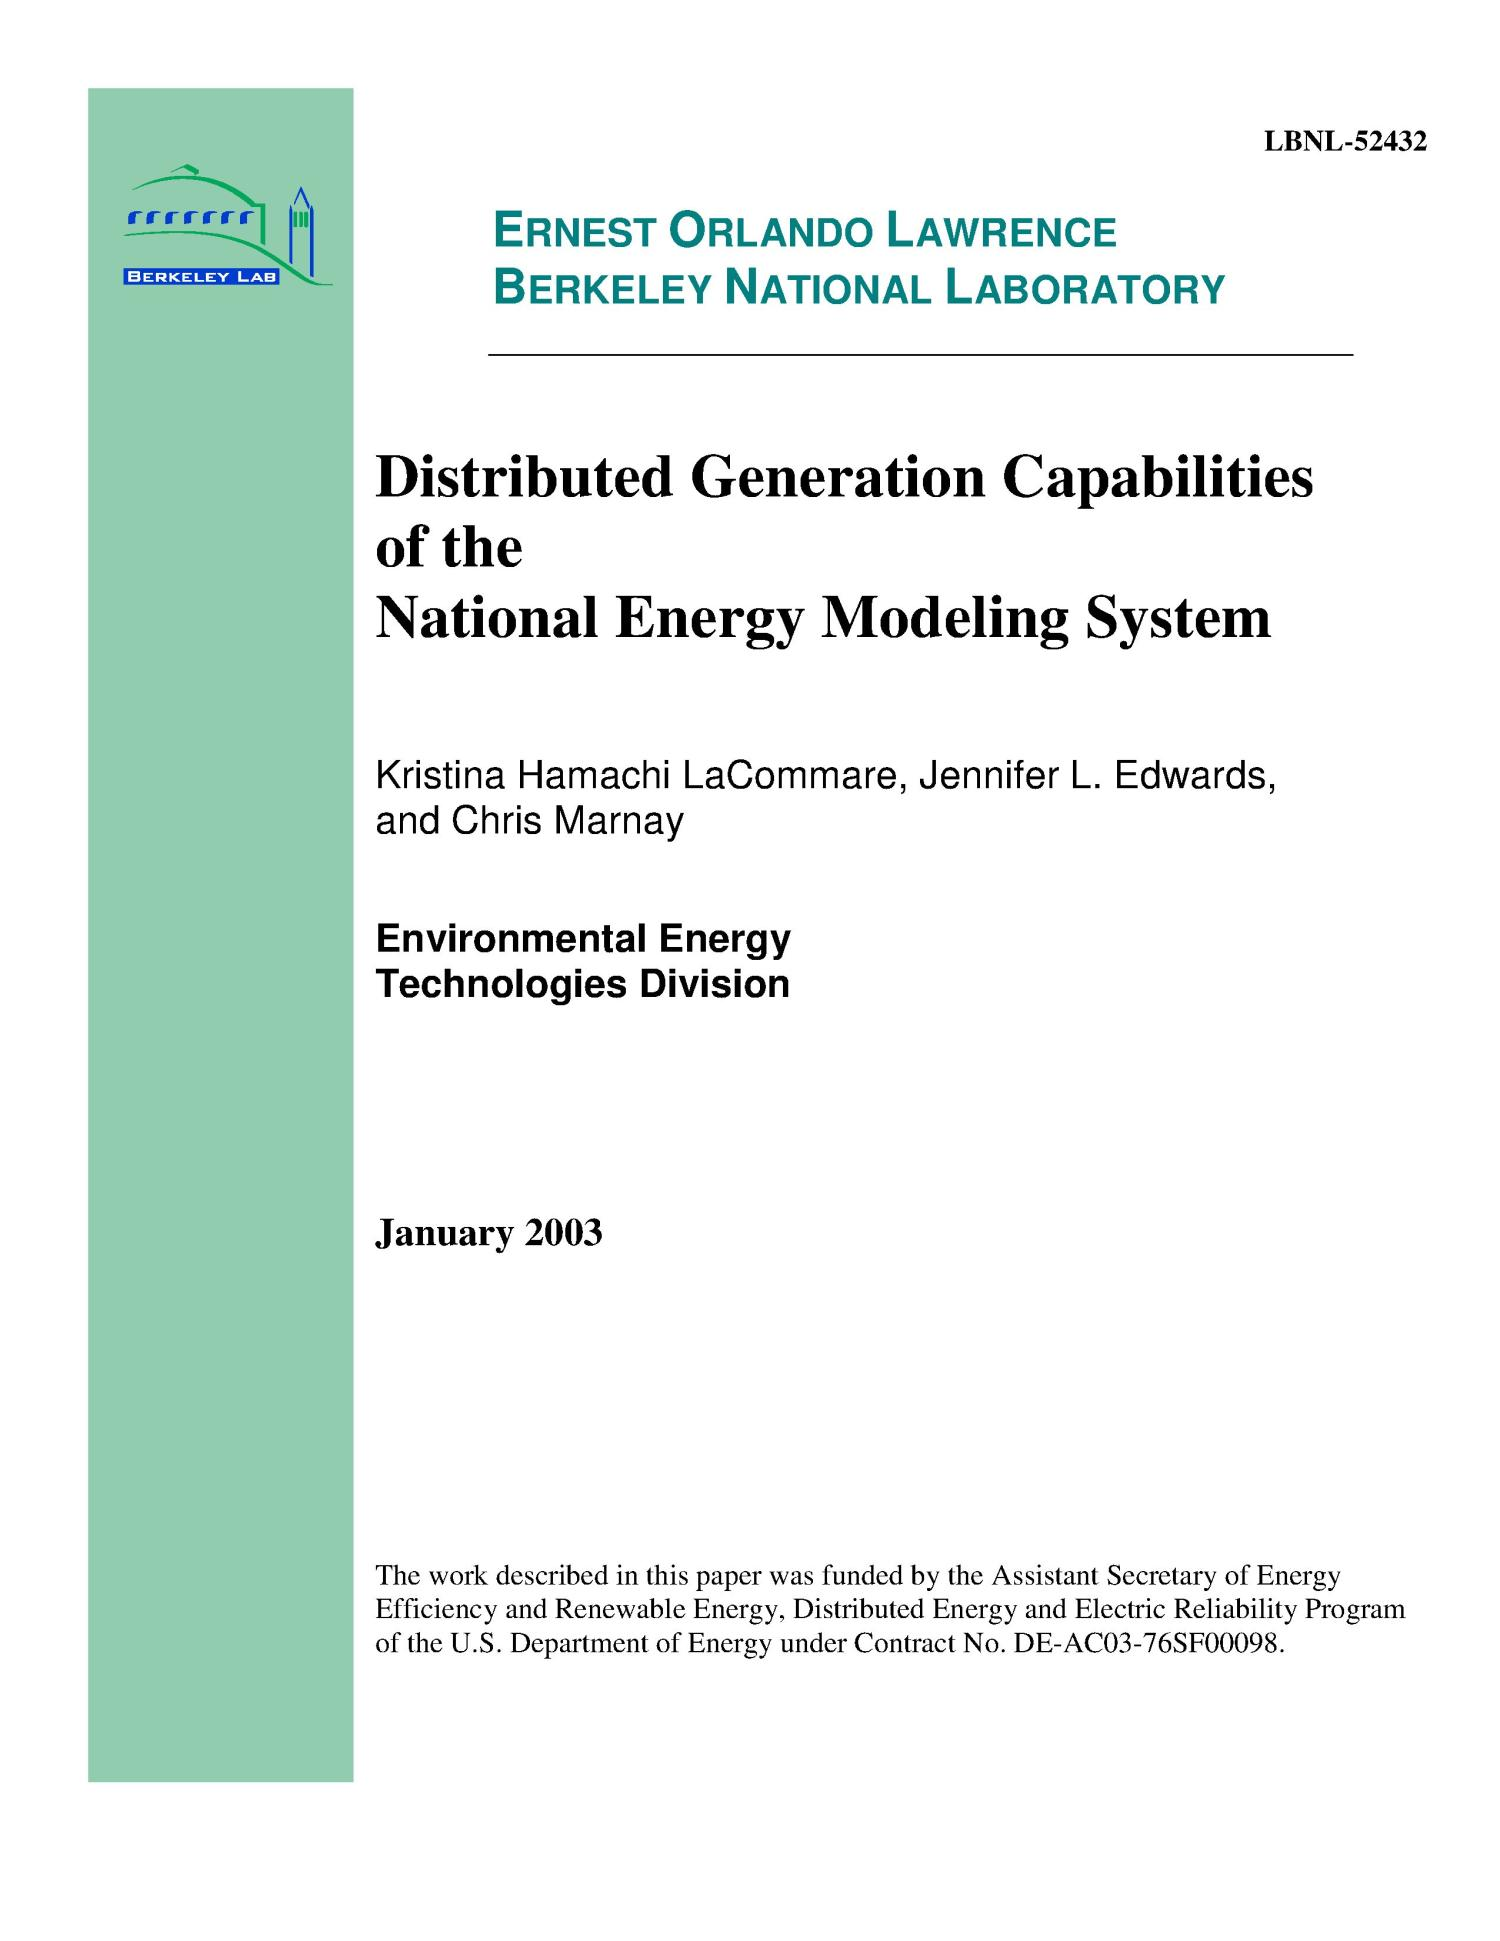 Distributed generation capabilities of the national energy modeling system                                                                                                      [Sequence #]: 1 of 47